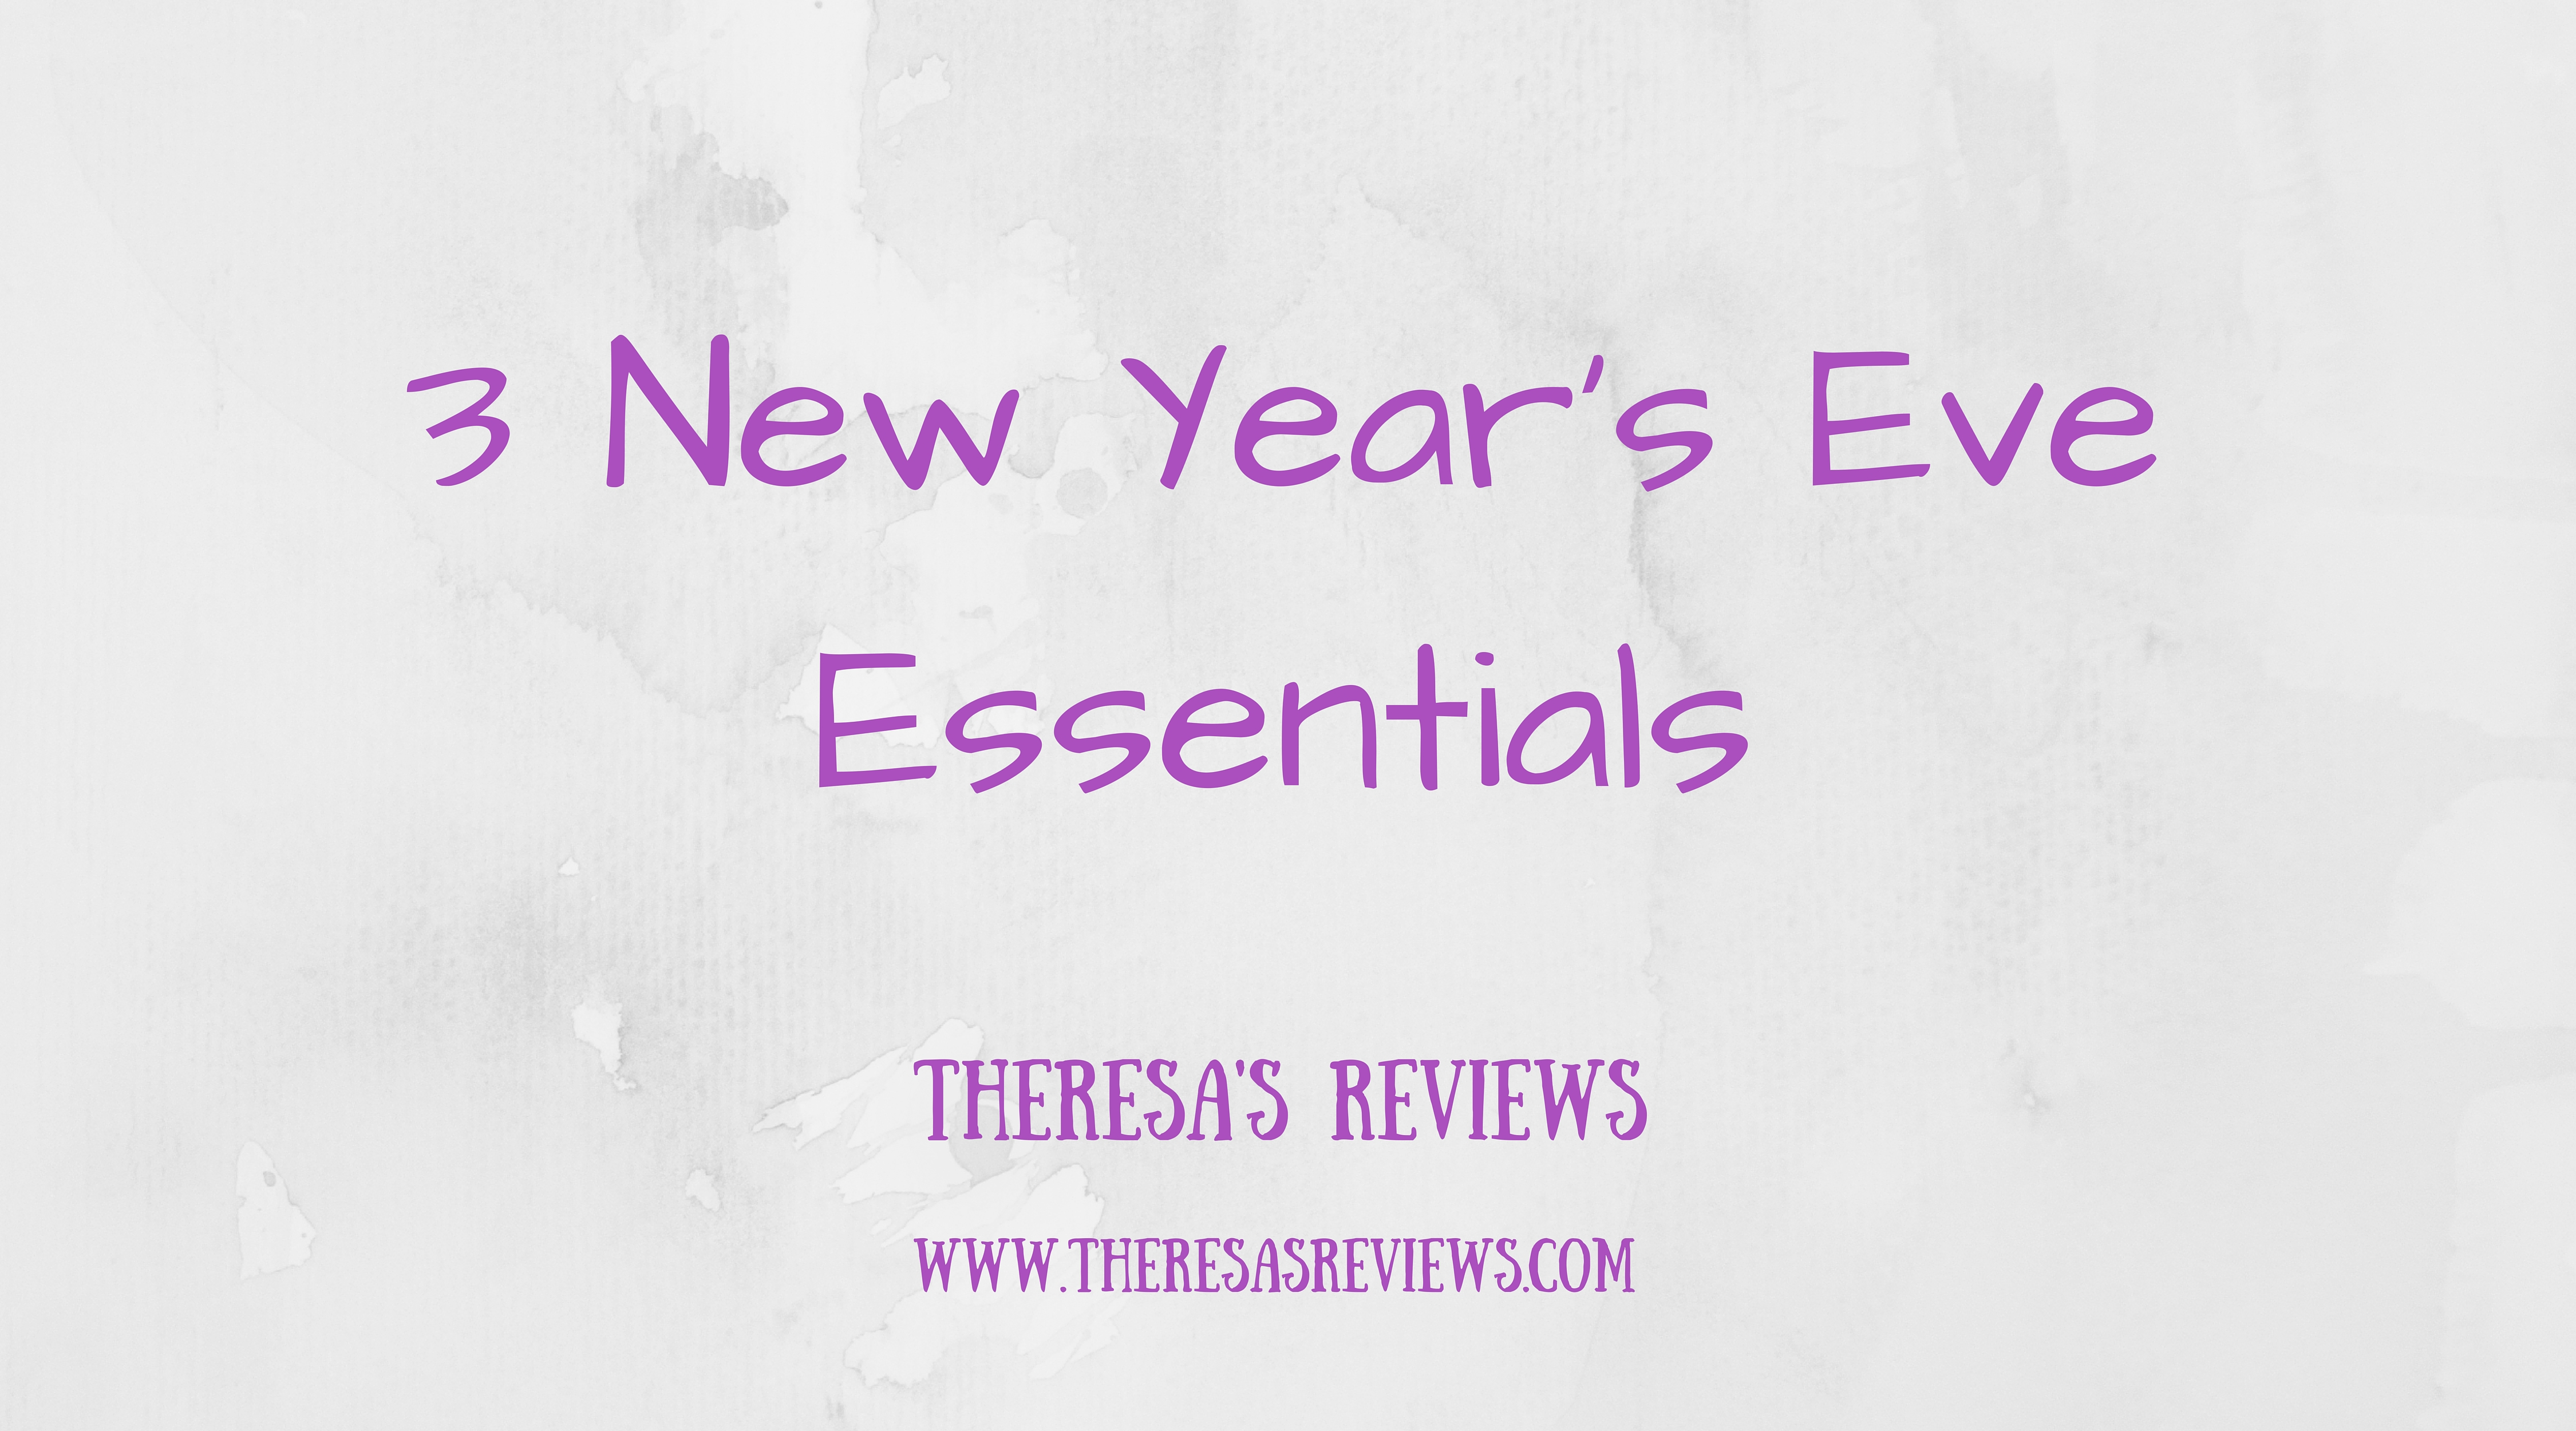 3 New Year's Eve Essentials - Theresa's Reviews - www.theresasreviews.com